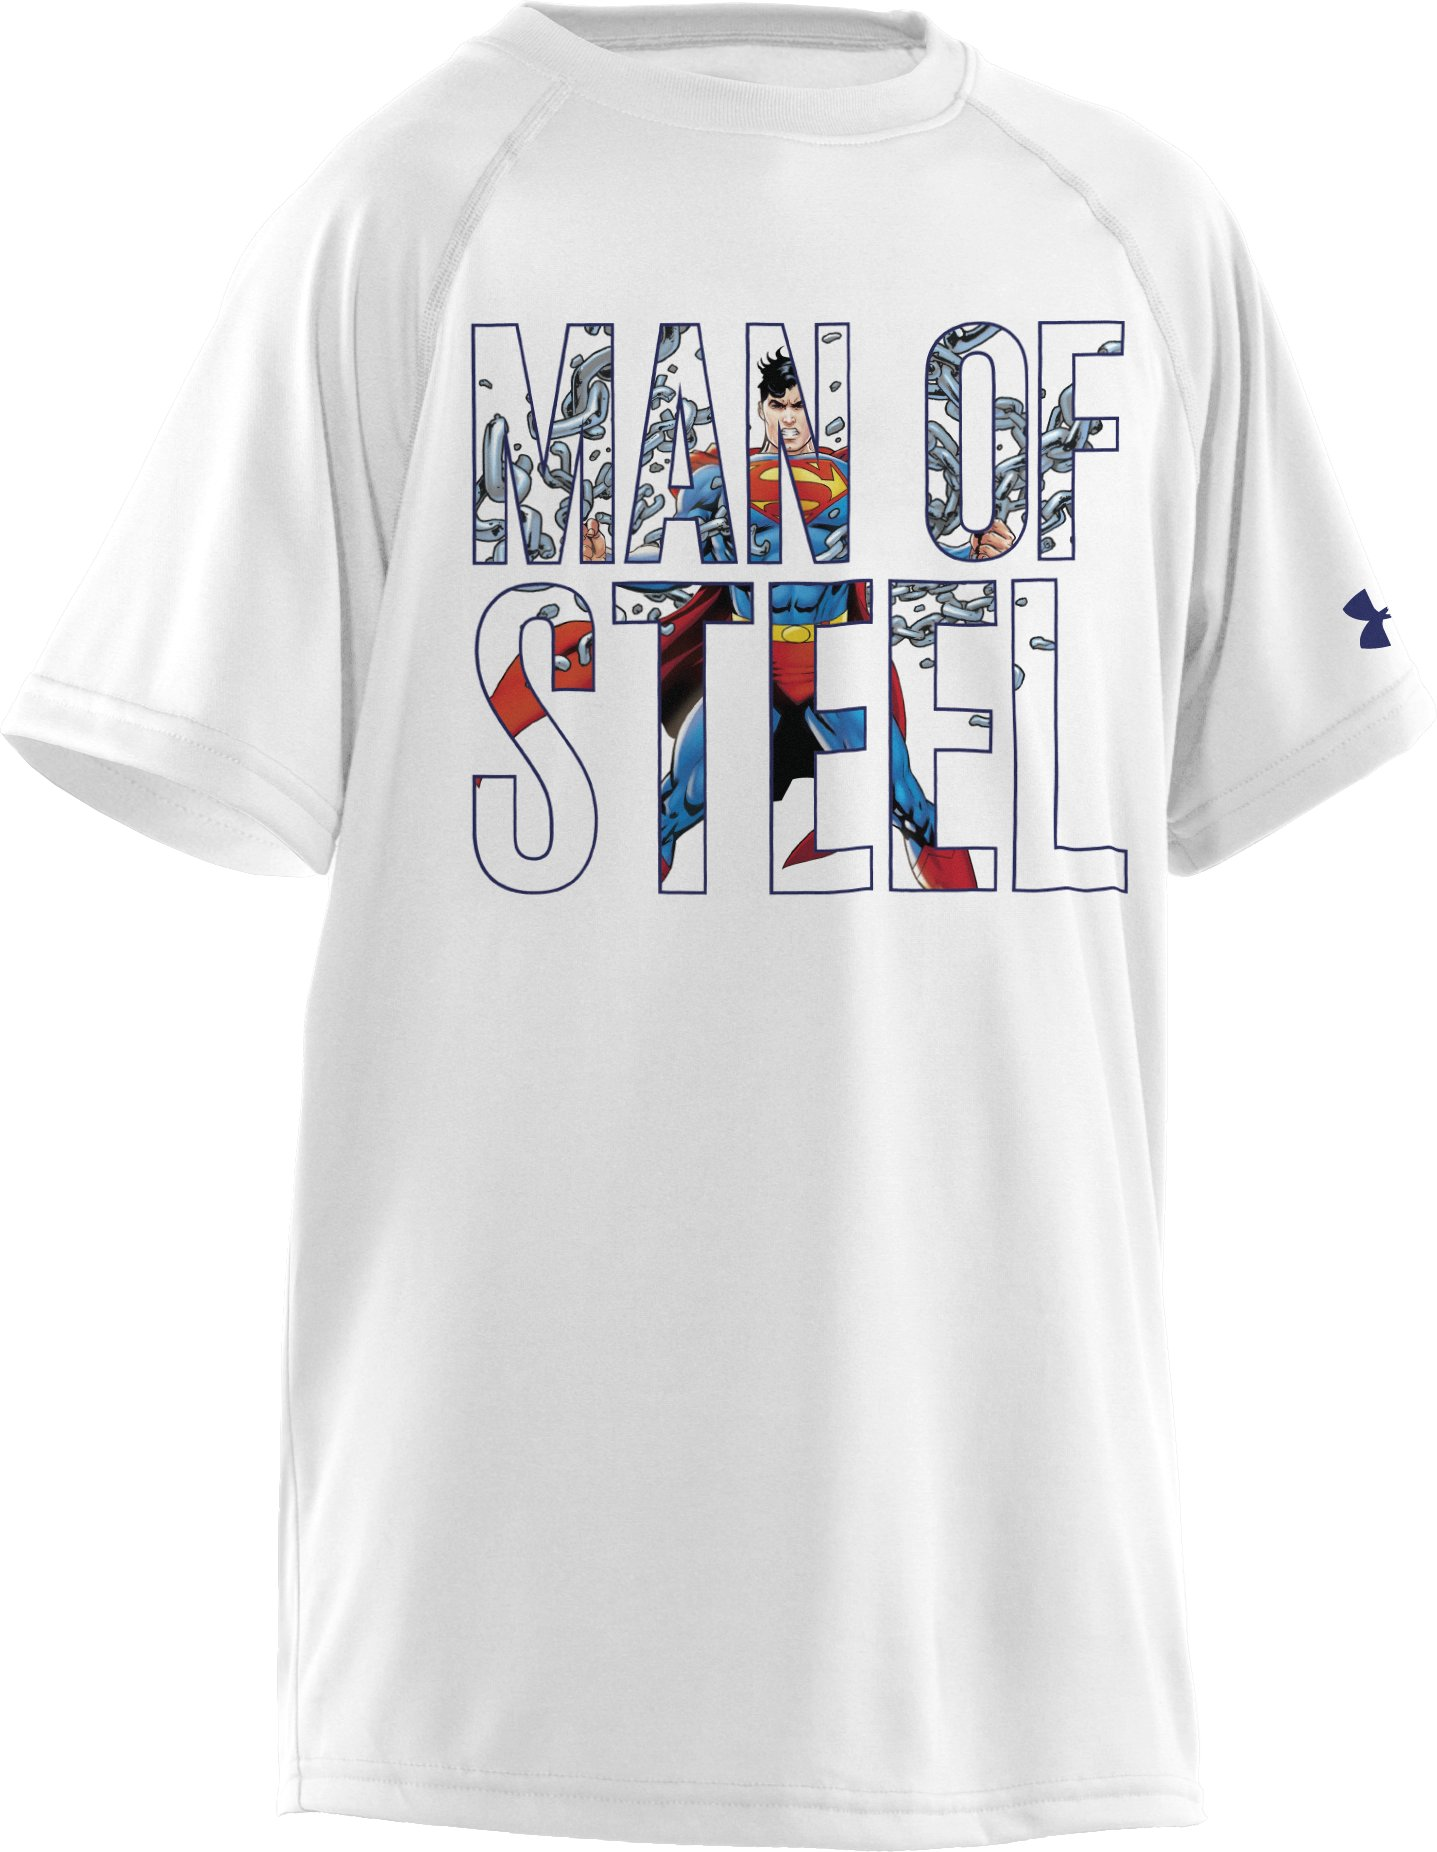 Boys' Under Armour® Alter Ego Man Of Steel T-Shirt, White